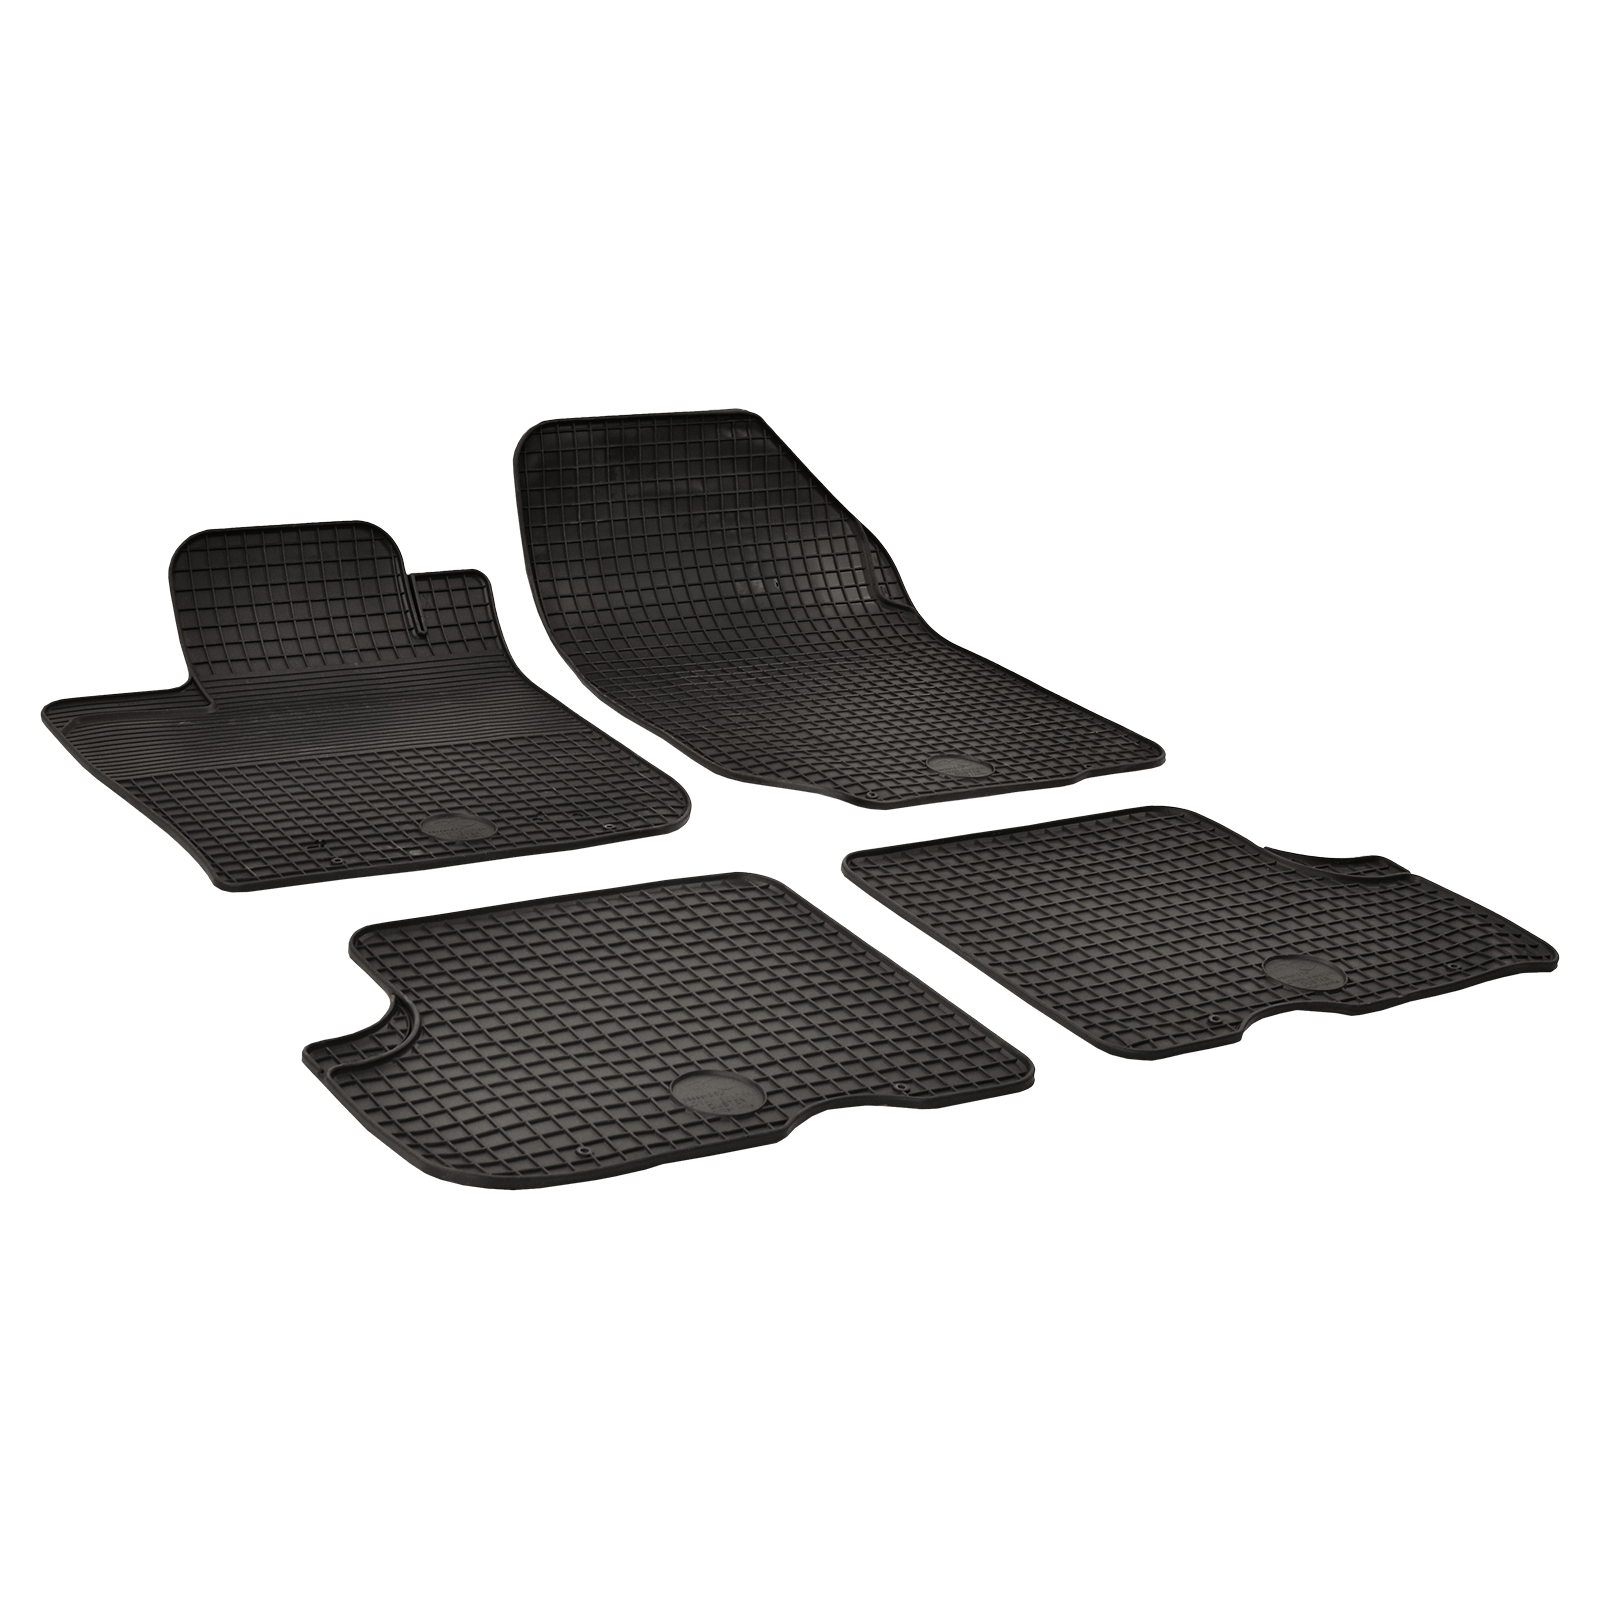 tapis de sol en caoutchouc anthracite pour dacia duster bj. Black Bedroom Furniture Sets. Home Design Ideas